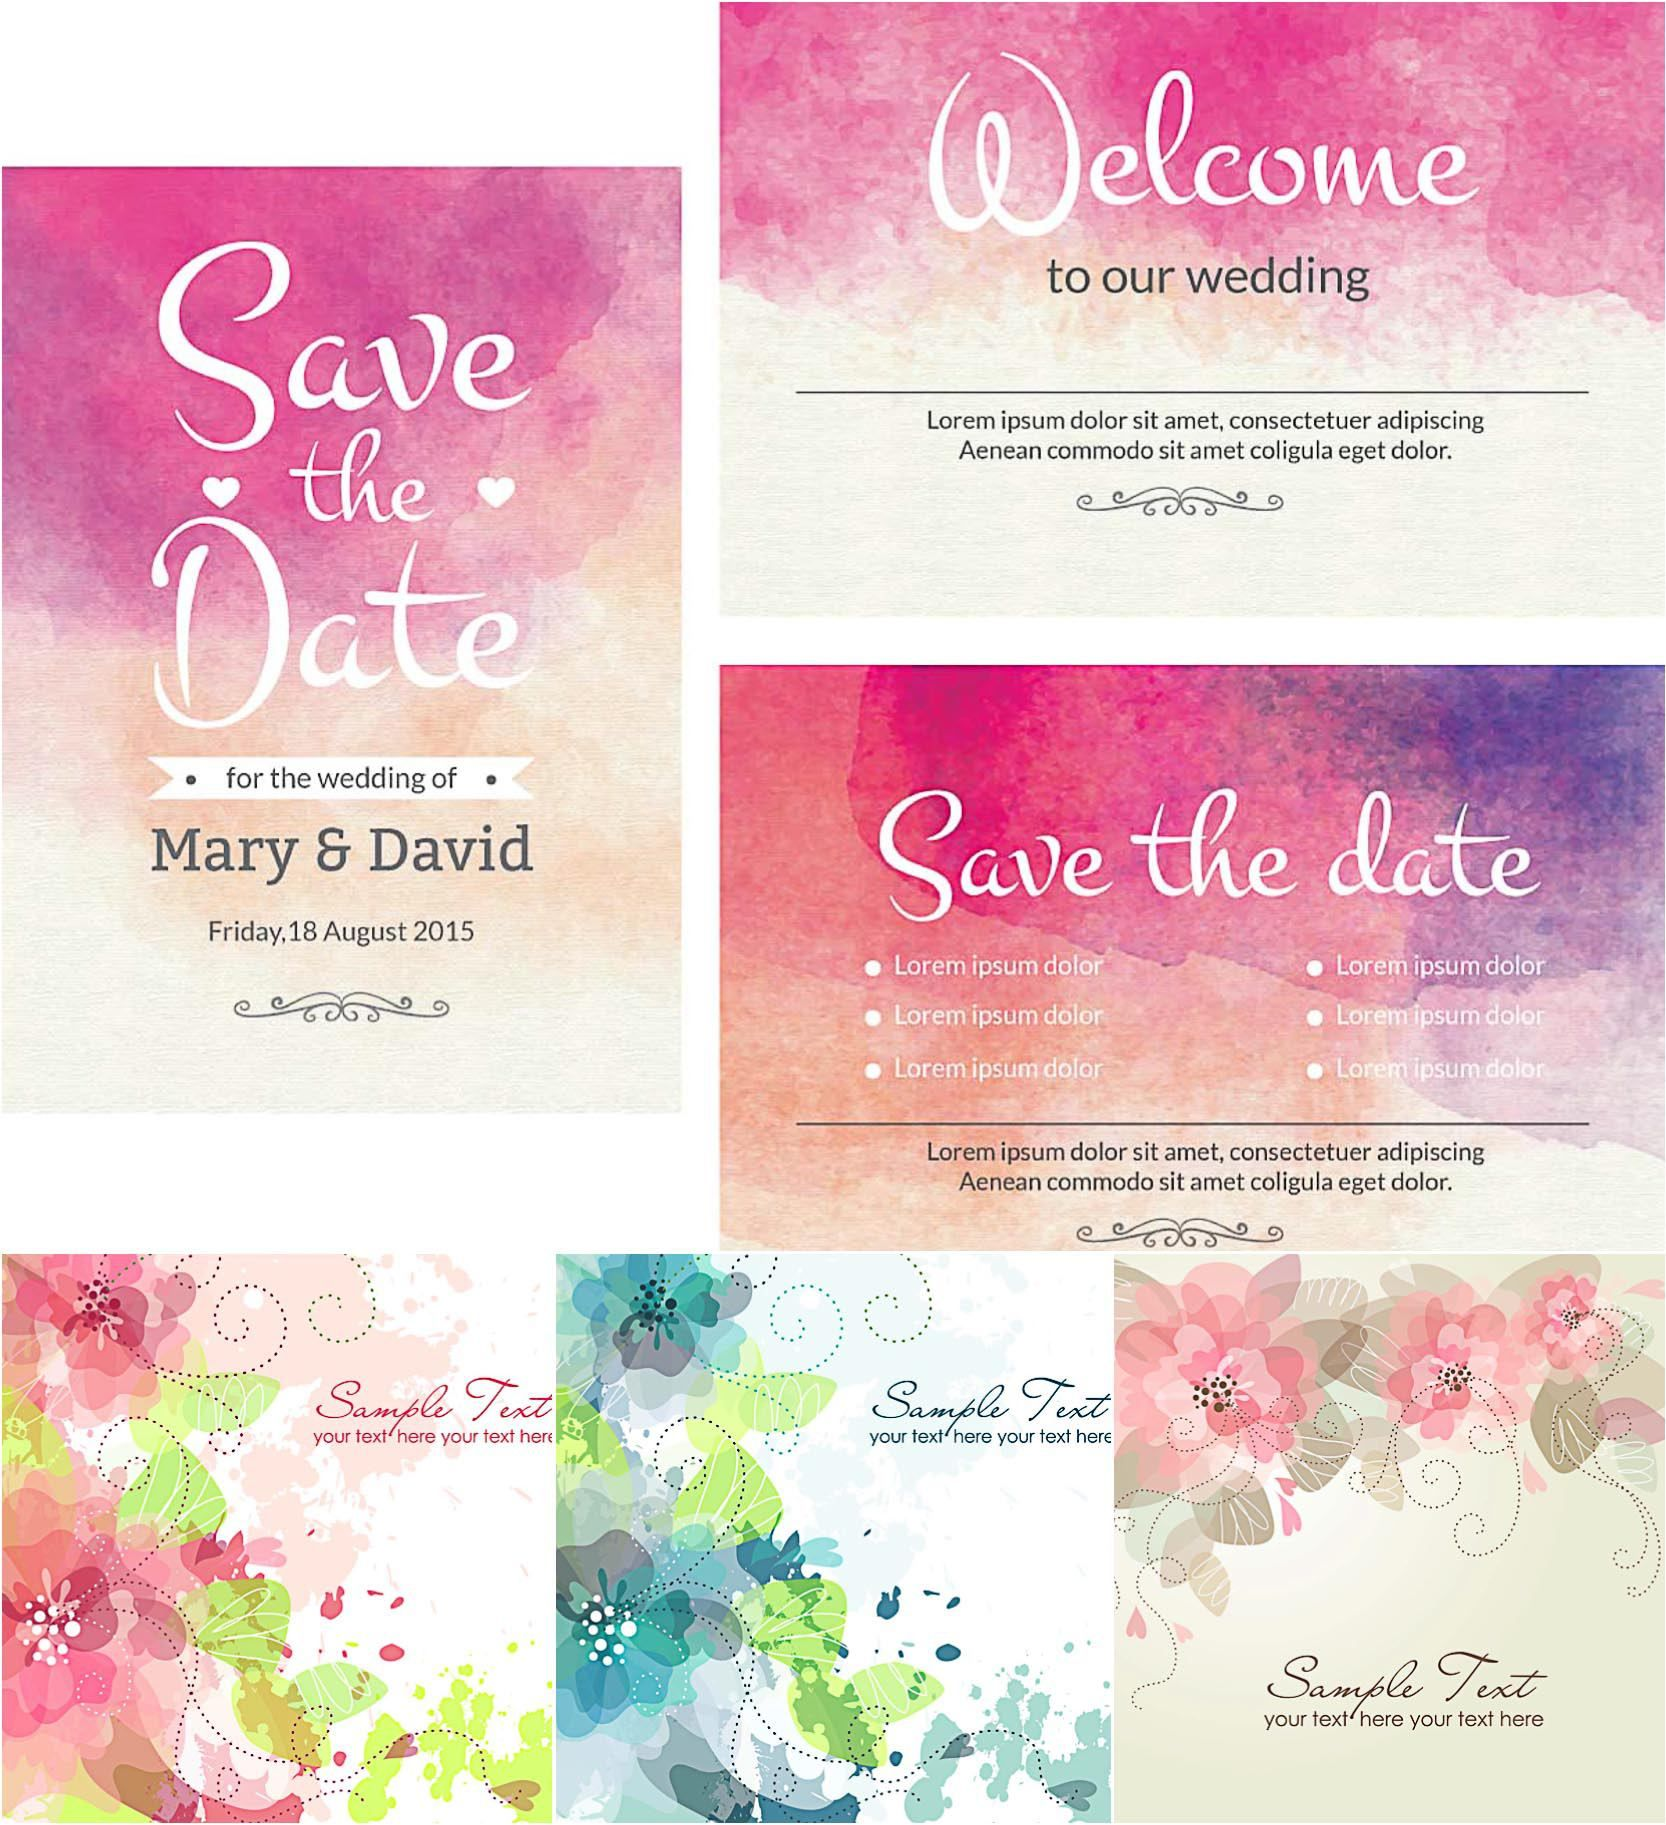 Wedding invitations cards wedding invitations cards near me wedding invitations cards wedding invitations cards near me superb invitation superb invitation stopboris Choice Image